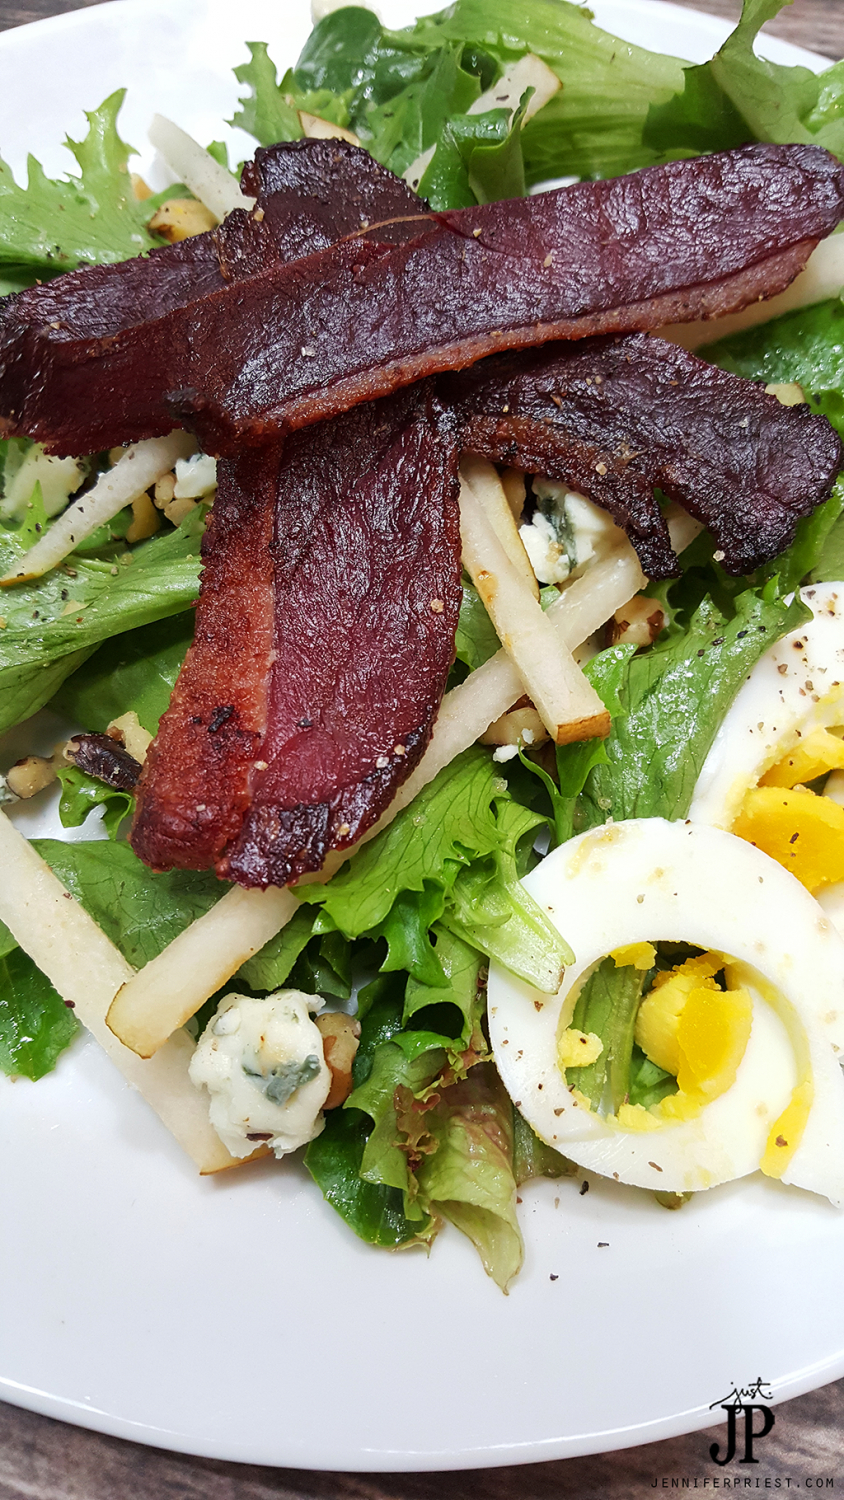 Decadent-Duck-Bacon-Salad-with-Bosc-Pears-JPriest-10245